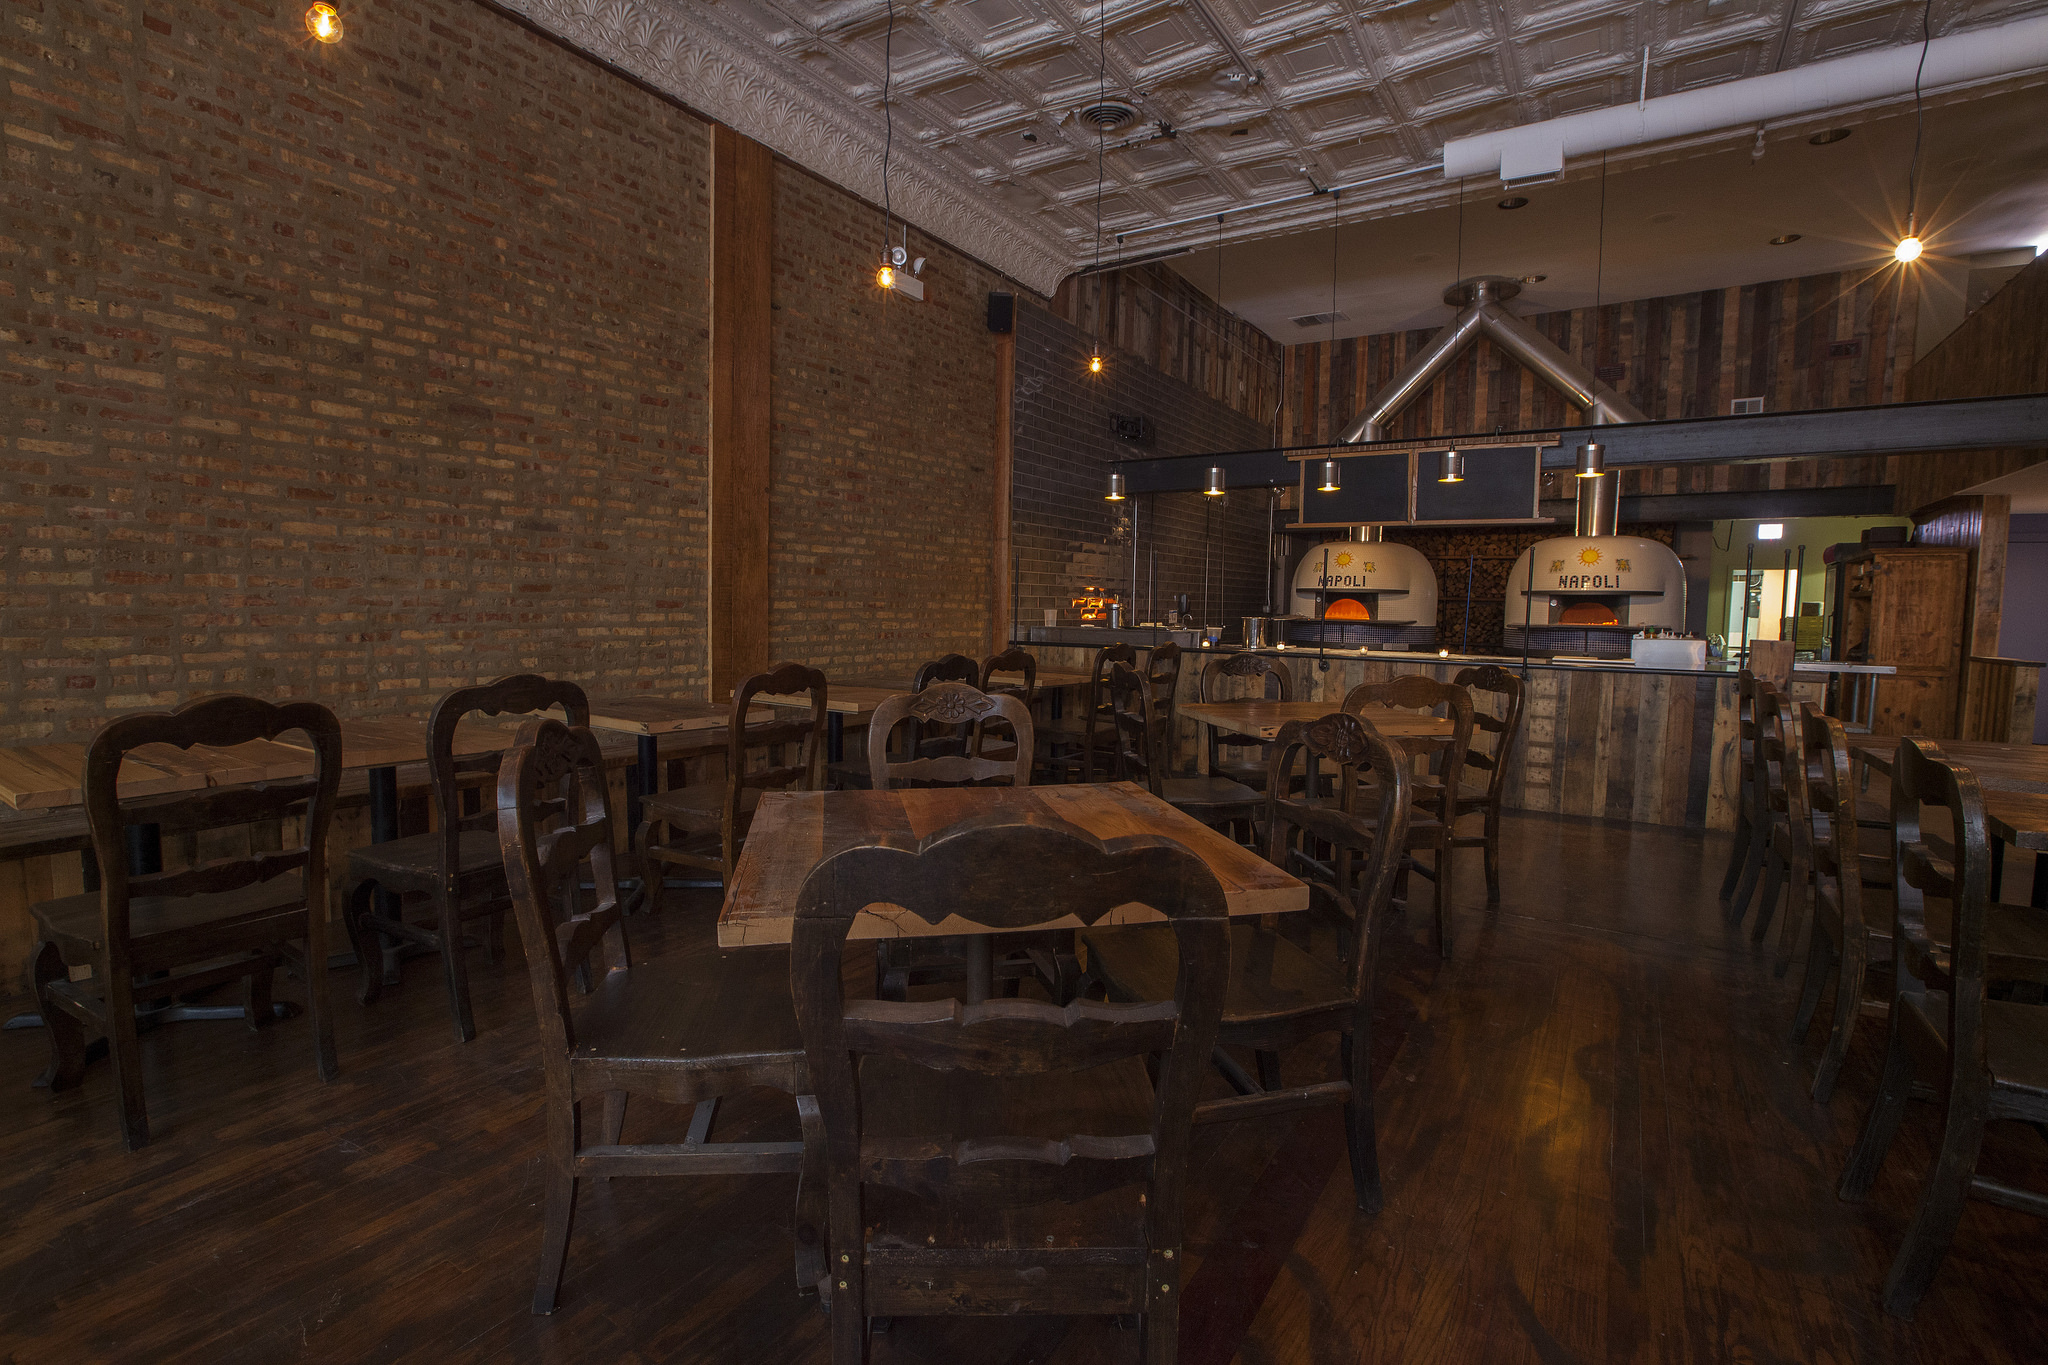 Chicago 39 s restaurant and bar openings spring summer 2016 for Table 52 chicago restaurant